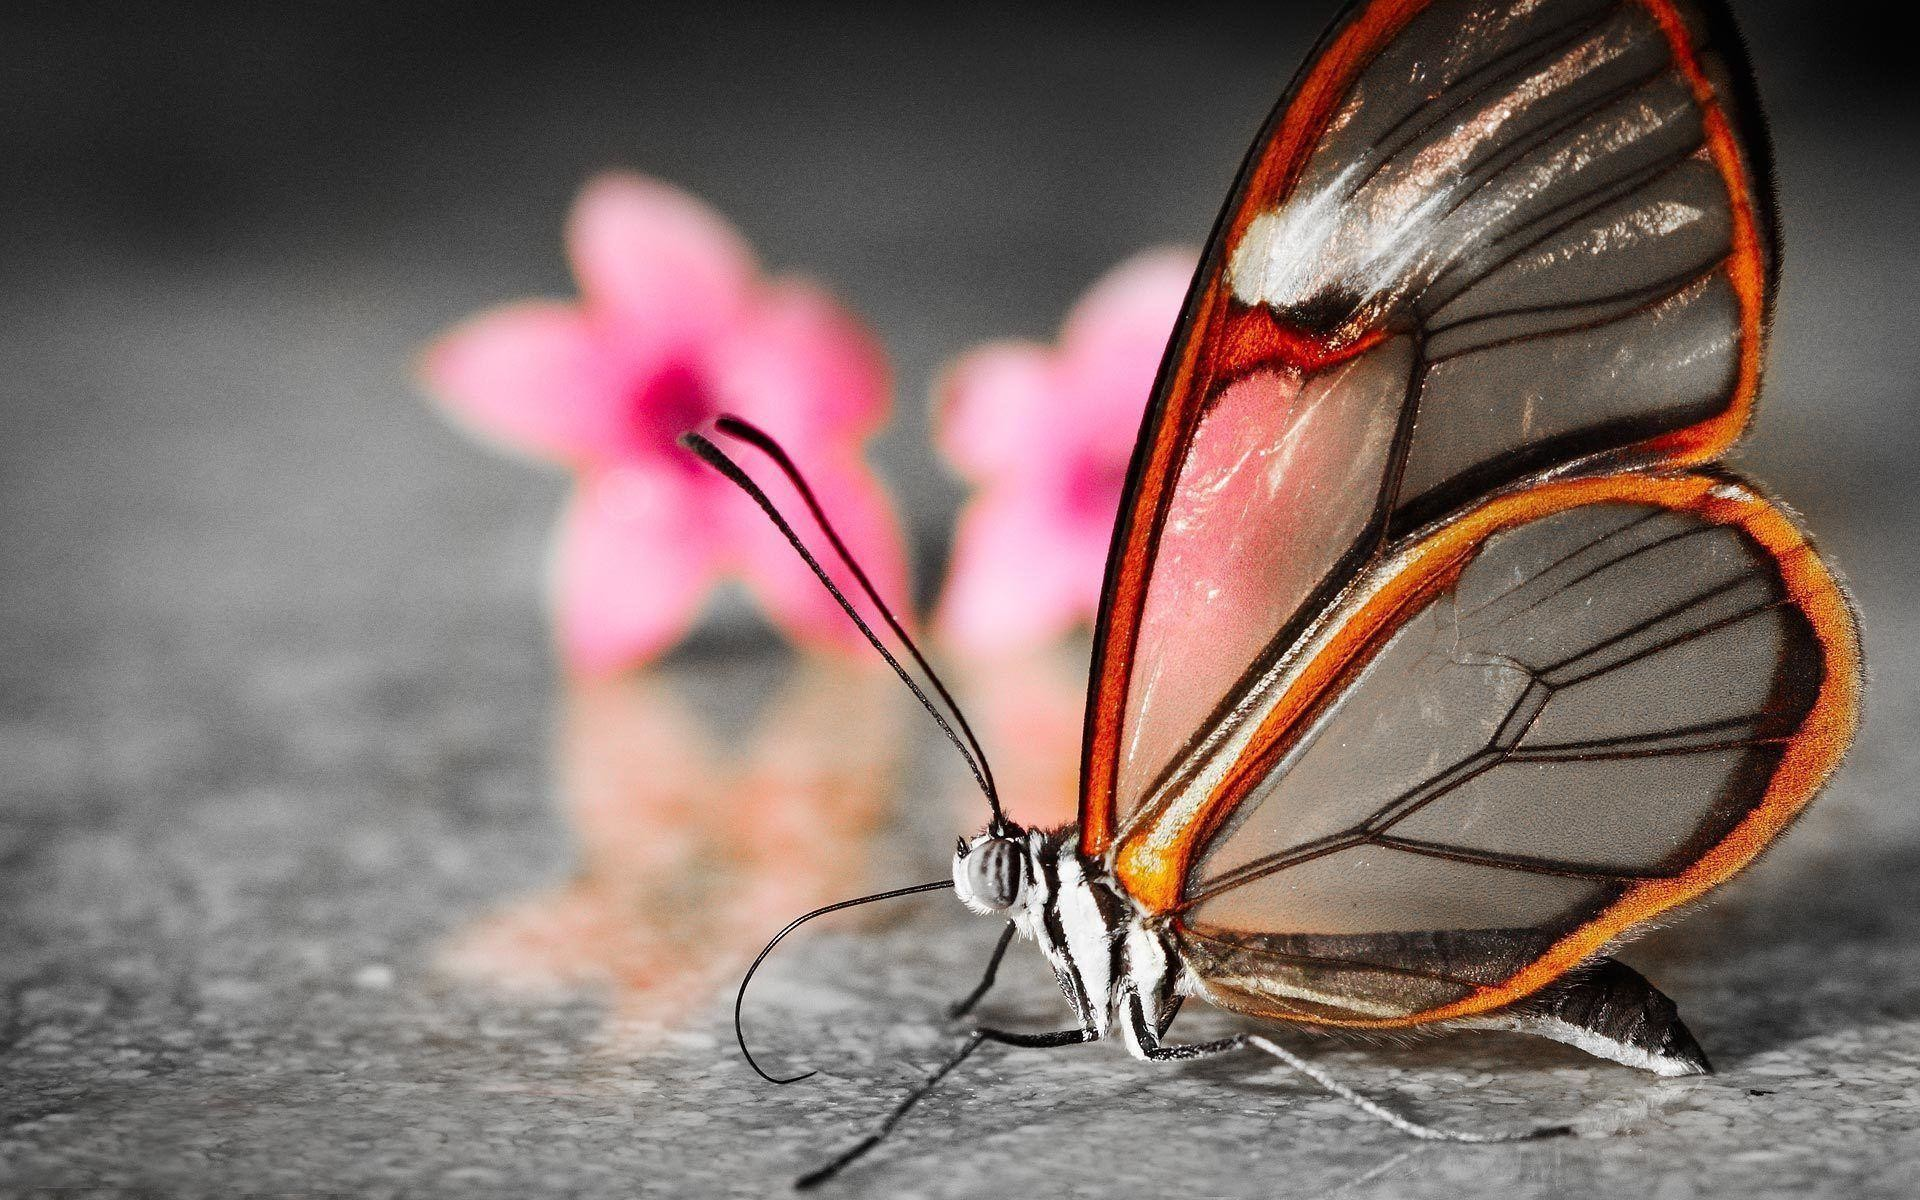 Butterflies Wallpapers Hd Download: Butterfly Wallpaper Desktop ·① WallpaperTag